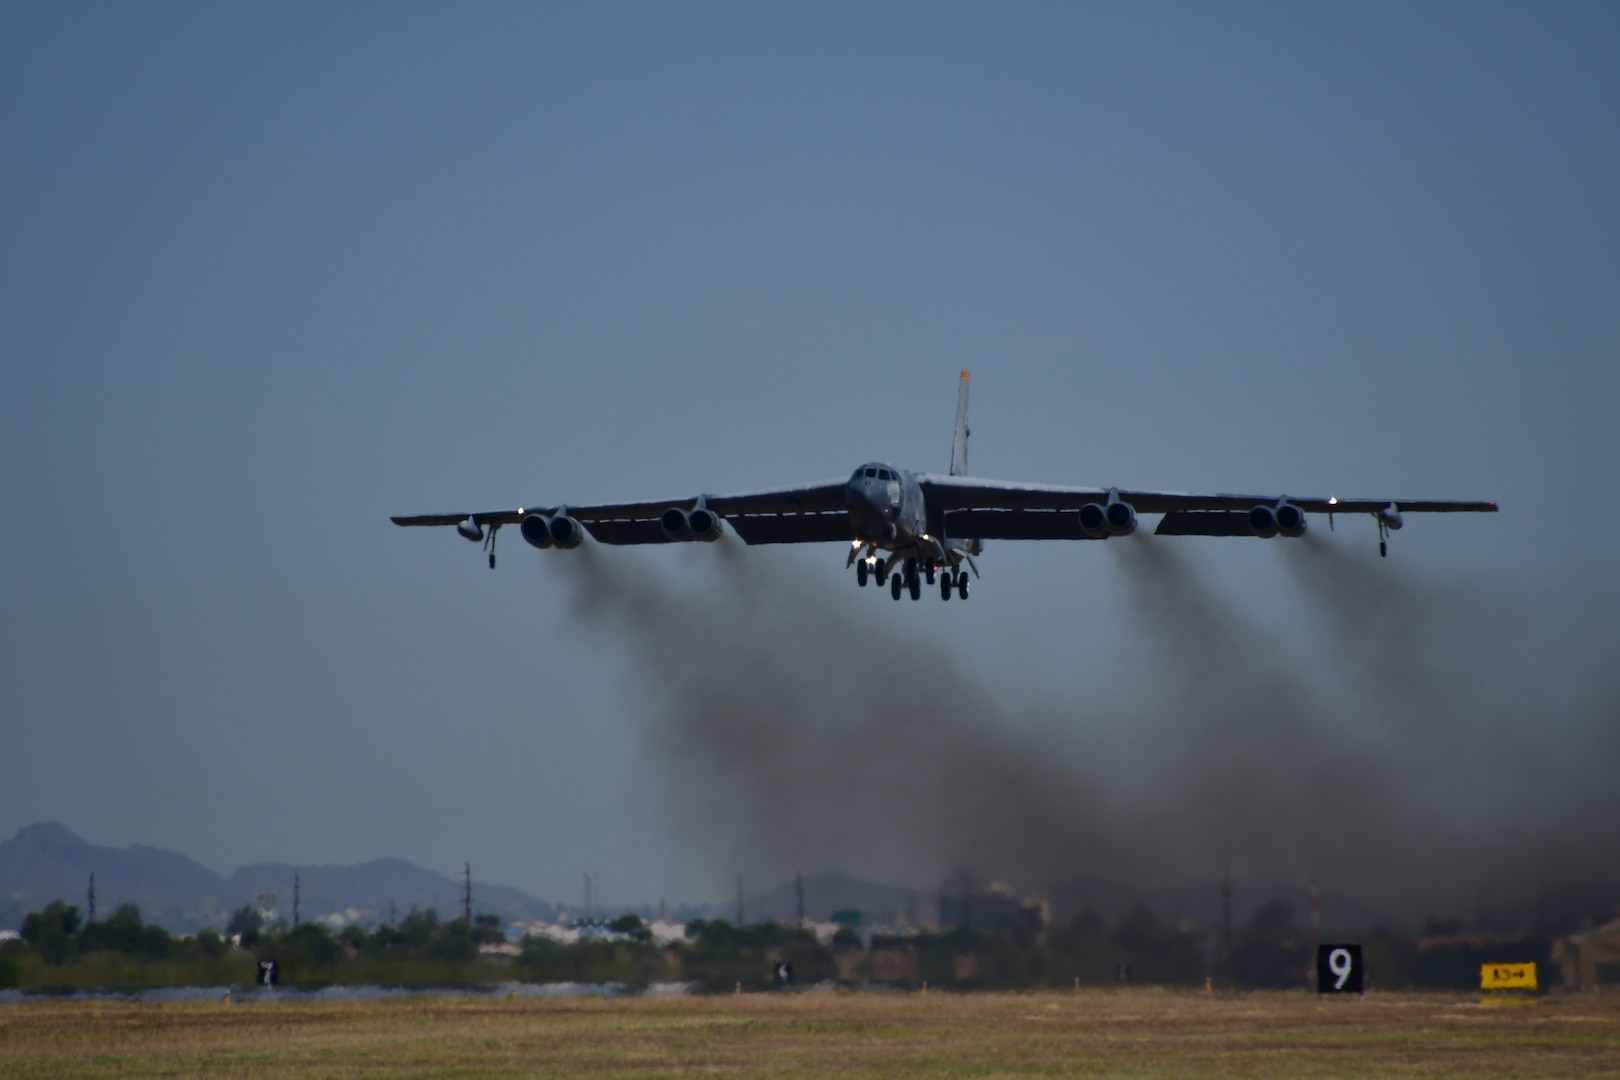 The B-52H completed phase one of its regeneration process at the 309th Aerospace Maintenance and Regeneration Group. It is scheduled to complete its phase depot maintenance in February of 2021 as a completely restored, fleet configured B-52H.